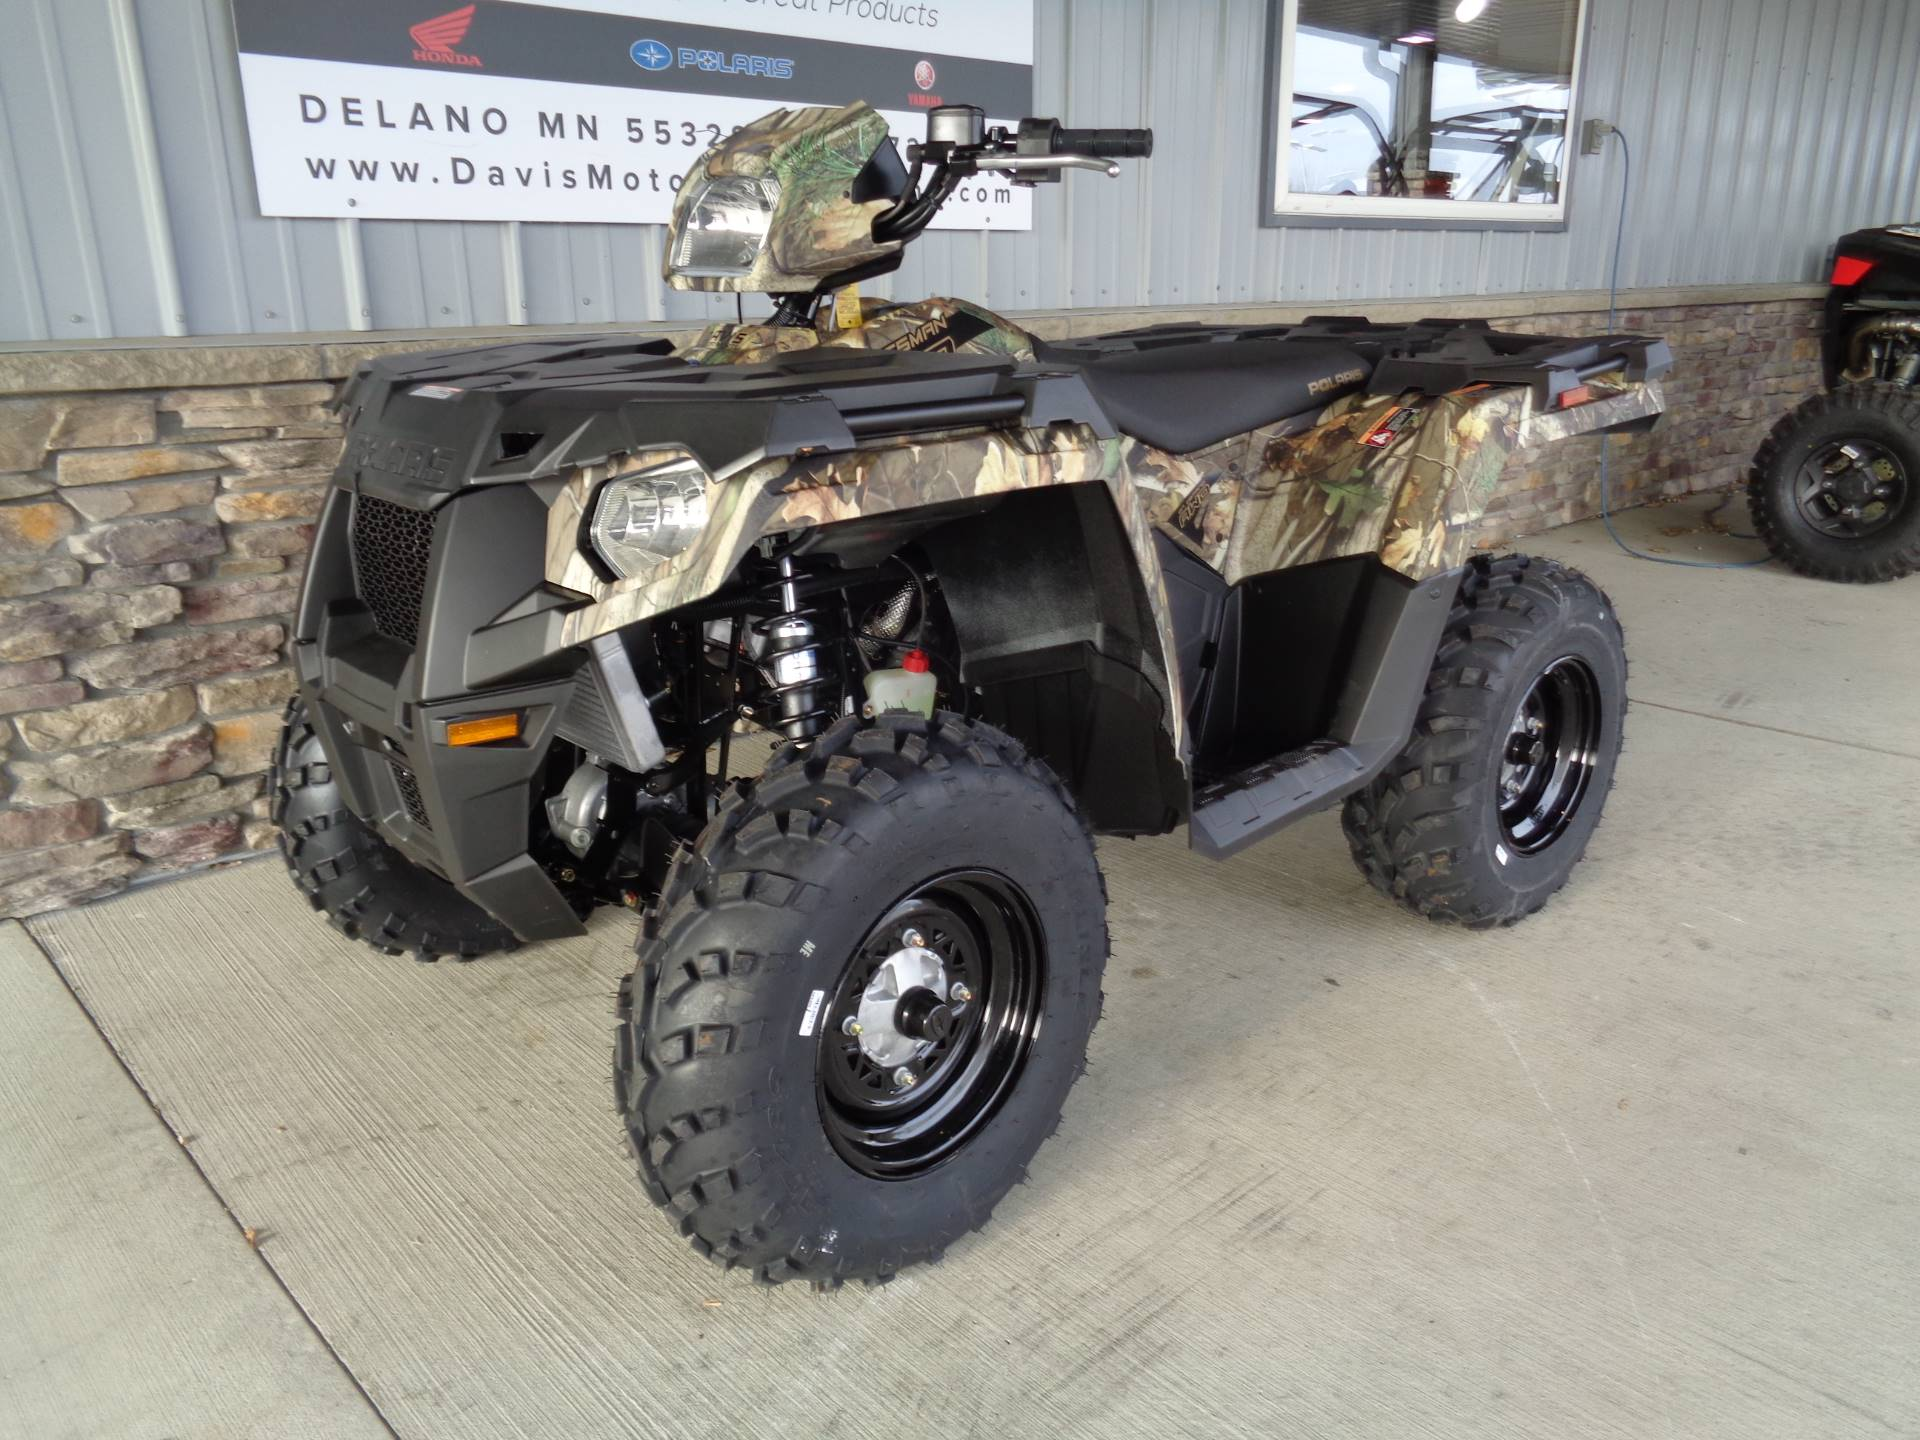 2019 Polaris Sportsman 570 Camo in Delano, Minnesota - Photo 4